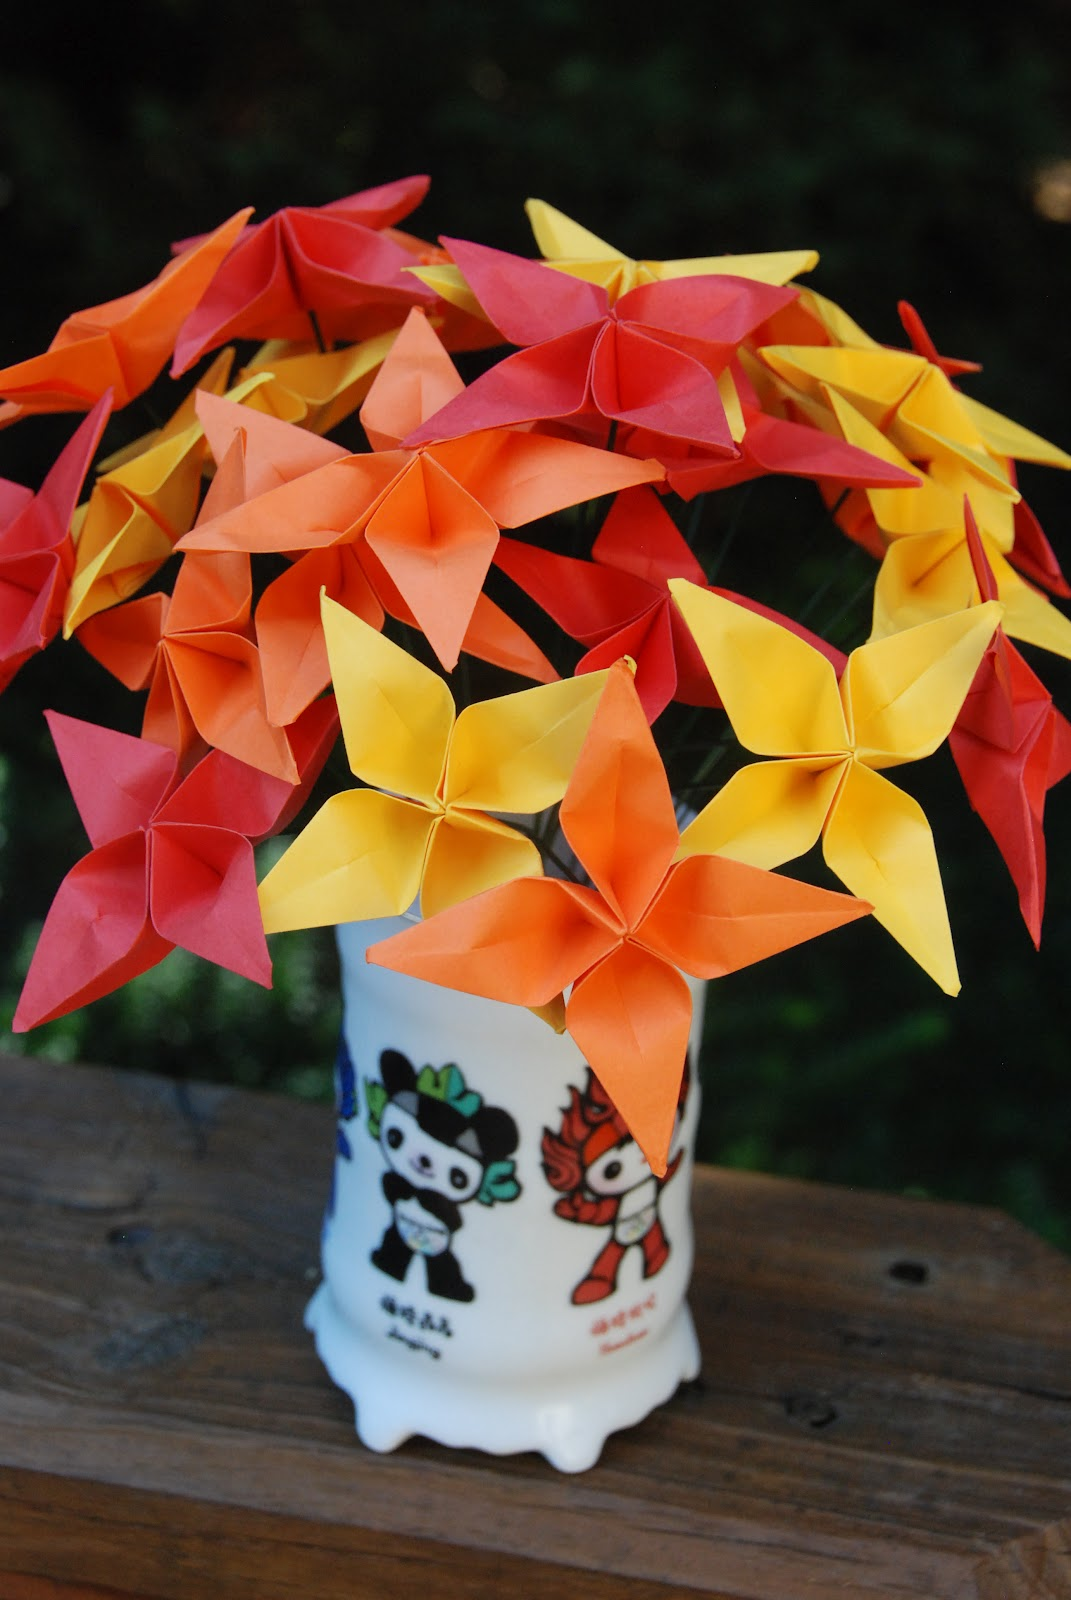 Everything origami this is perhaps one of my favorite flowers yet shop link httpsetsylisting107708385origami star flowers warm autumn bouquet all proceeds mightylinksfo